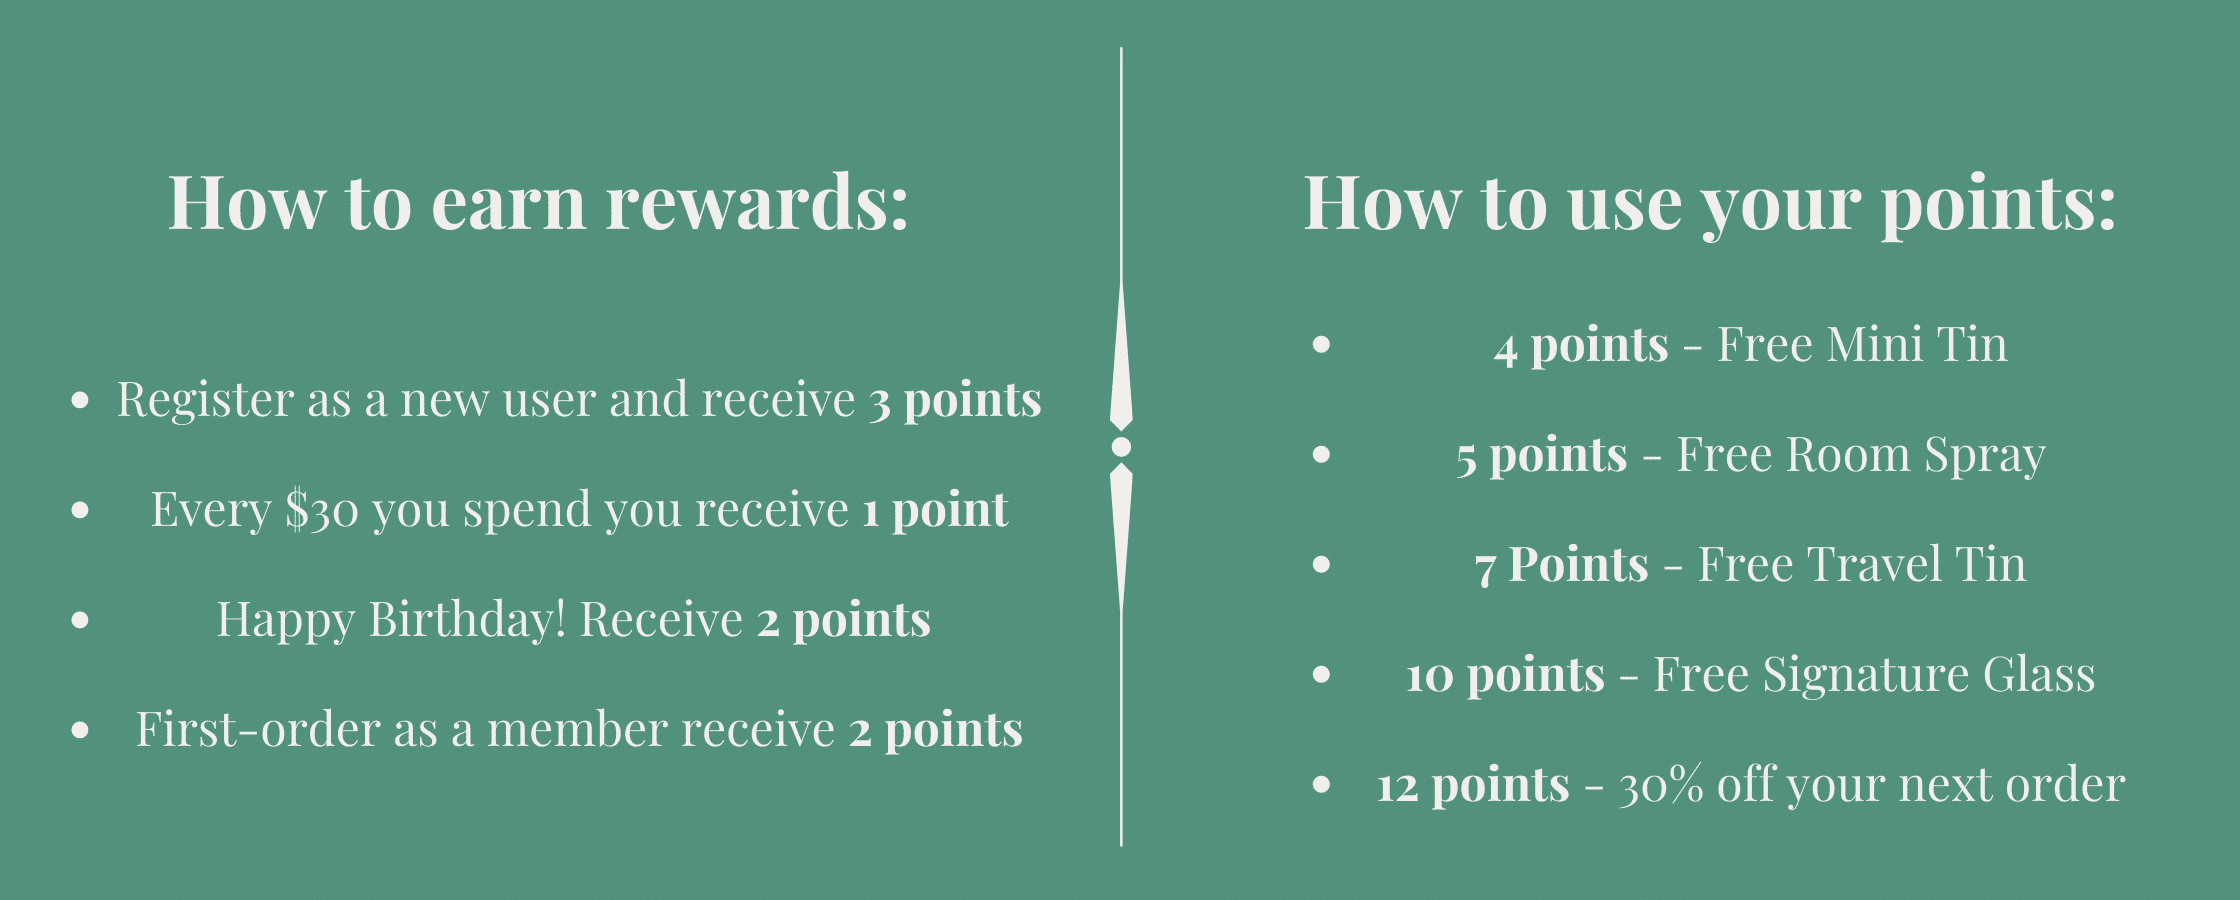 Seventh Avenue Apothecary Rewards member rules and point redemption